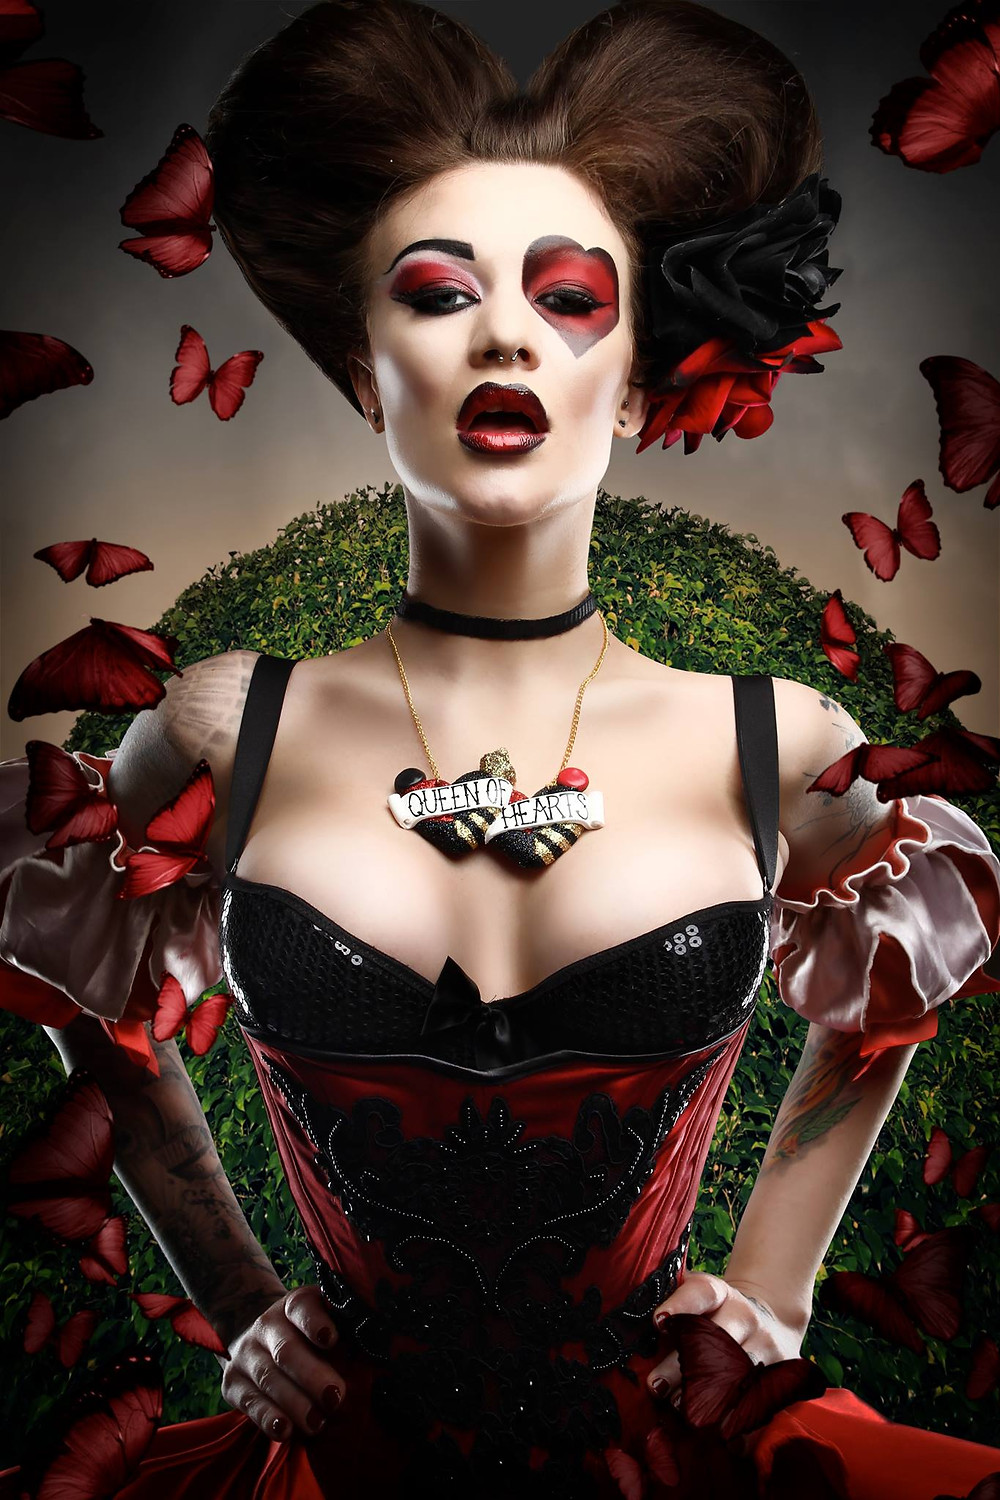 The Queen Of Hearts Disney Villain Cosplay | Model: Becky Holt | By Chrissy Sparks at DOLLHOUSE